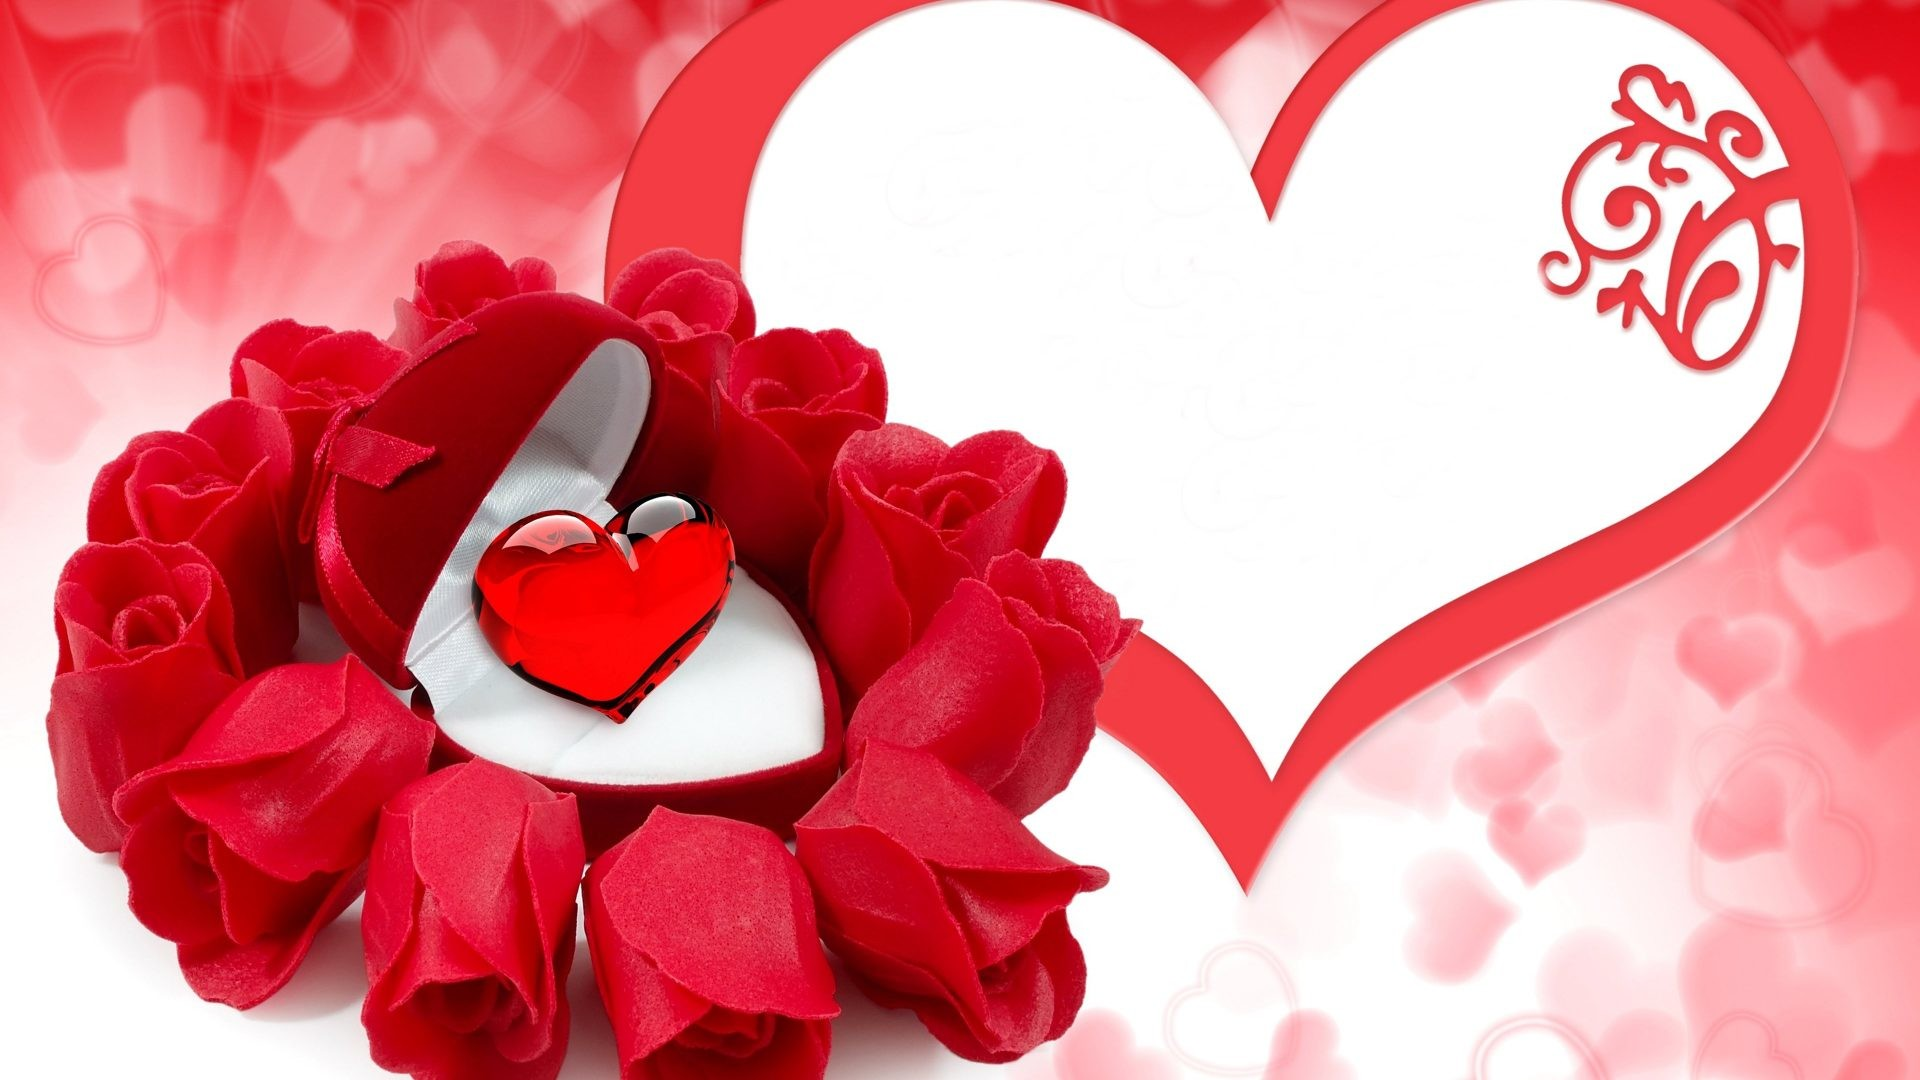 Wallpaper Flower Rose Love 42 Pictures